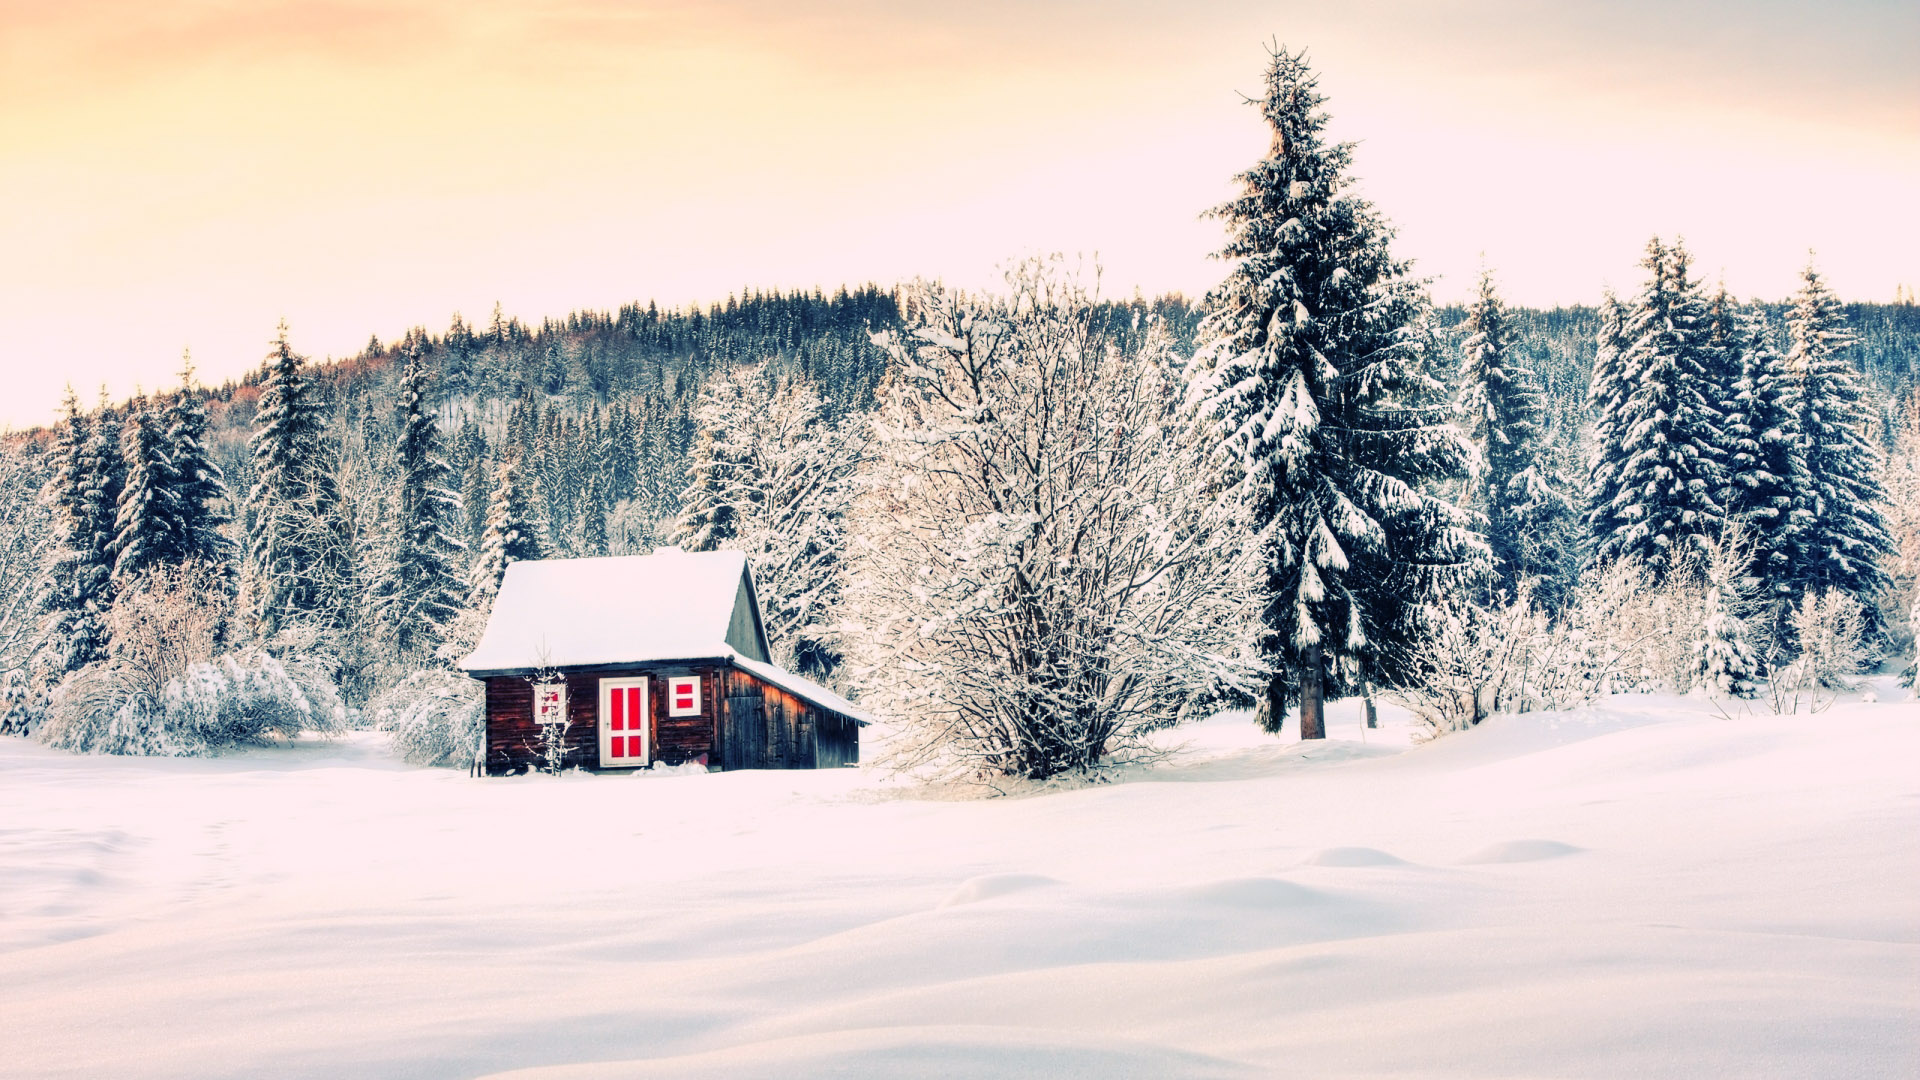 Beautiful Wallpaper Macbook Snow - XAZk6M  HD_97139.jpg